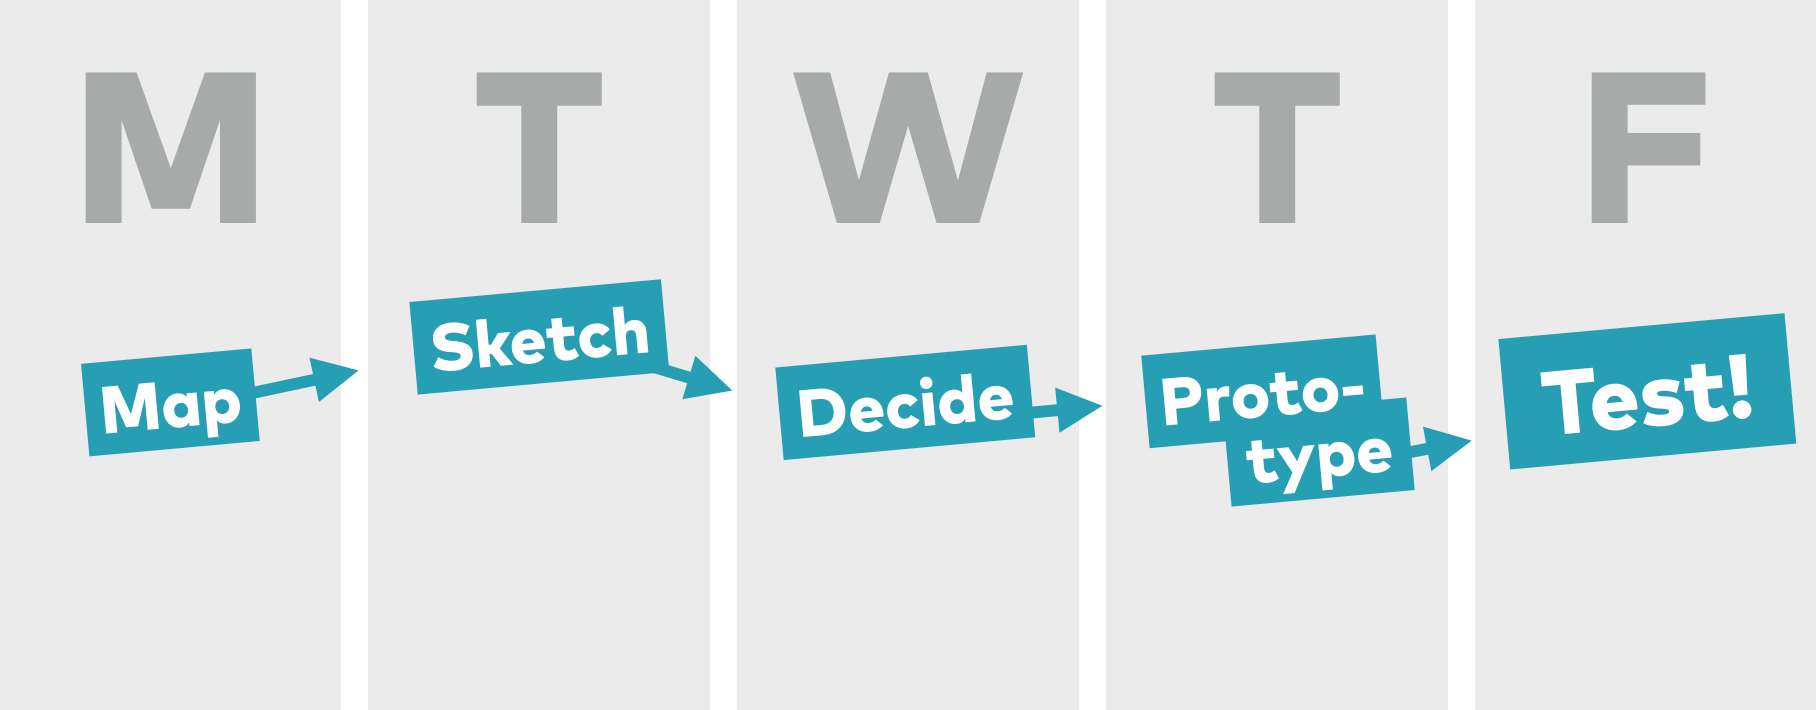 Design Sprints are a great tool for organizing a more lean and nimble design process.